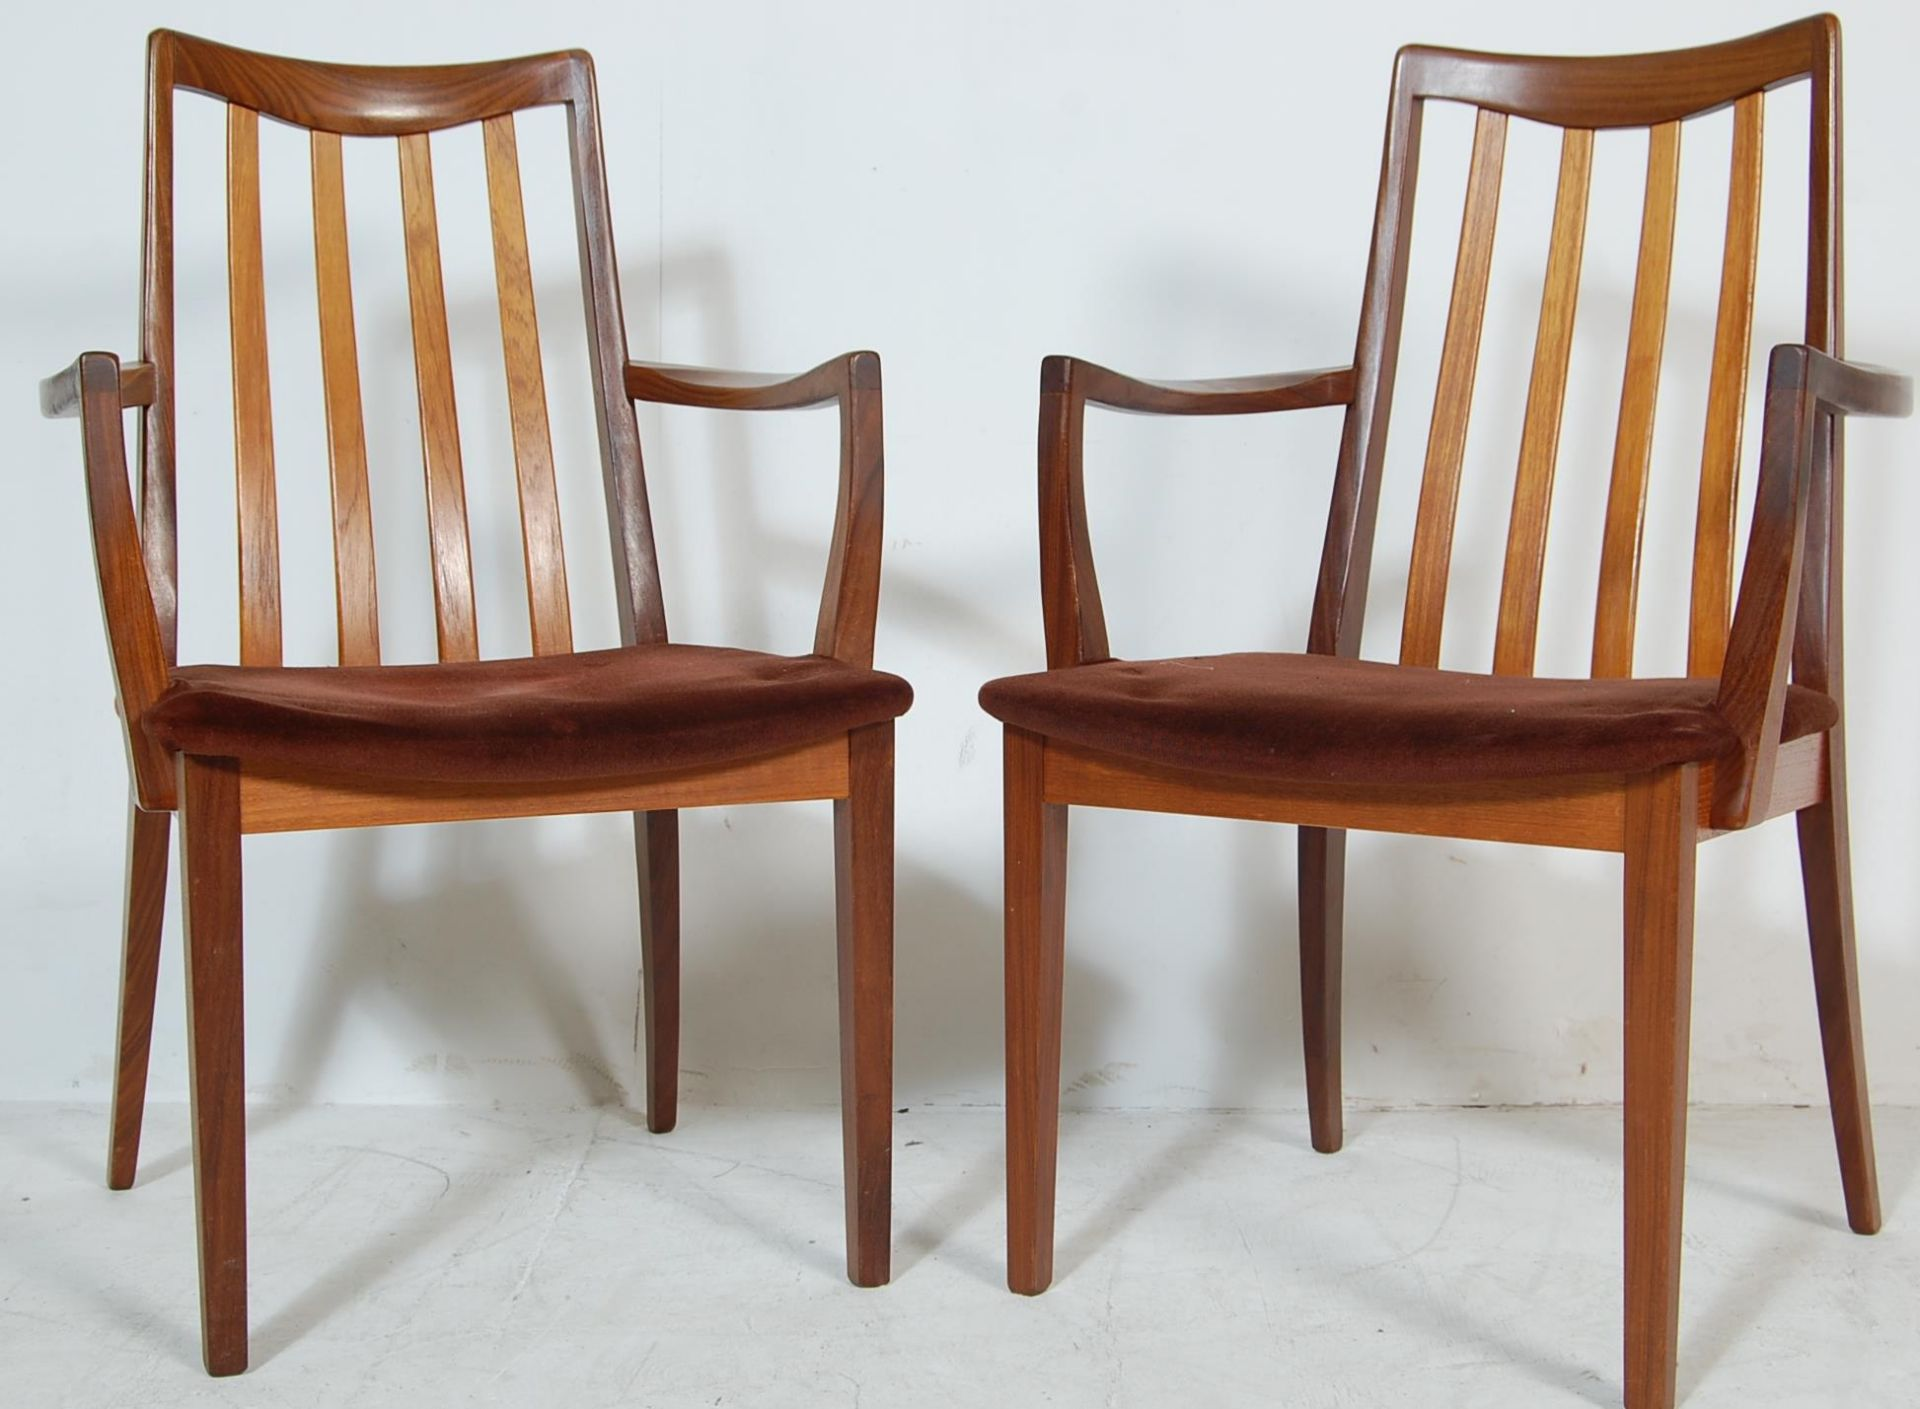 RETRO VINTAGE 1970S GPLAN DINING TABLE AND CHAIRS - Image 8 of 12